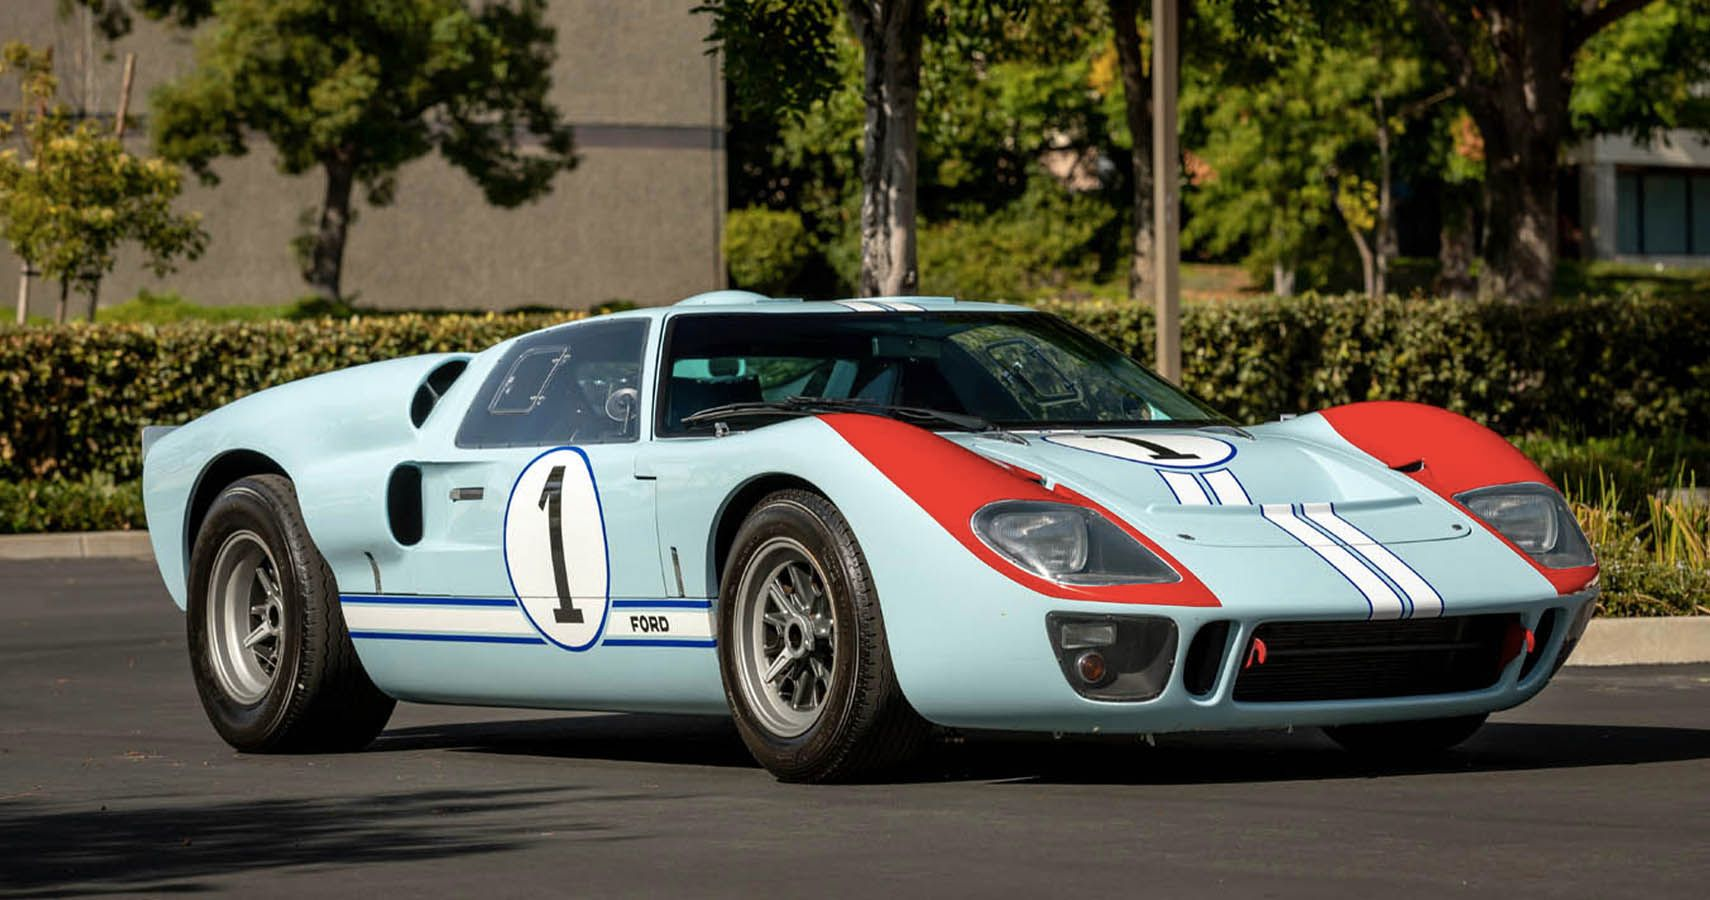 Superformance Taking Orders For Cinema Series Gt40 Replicas